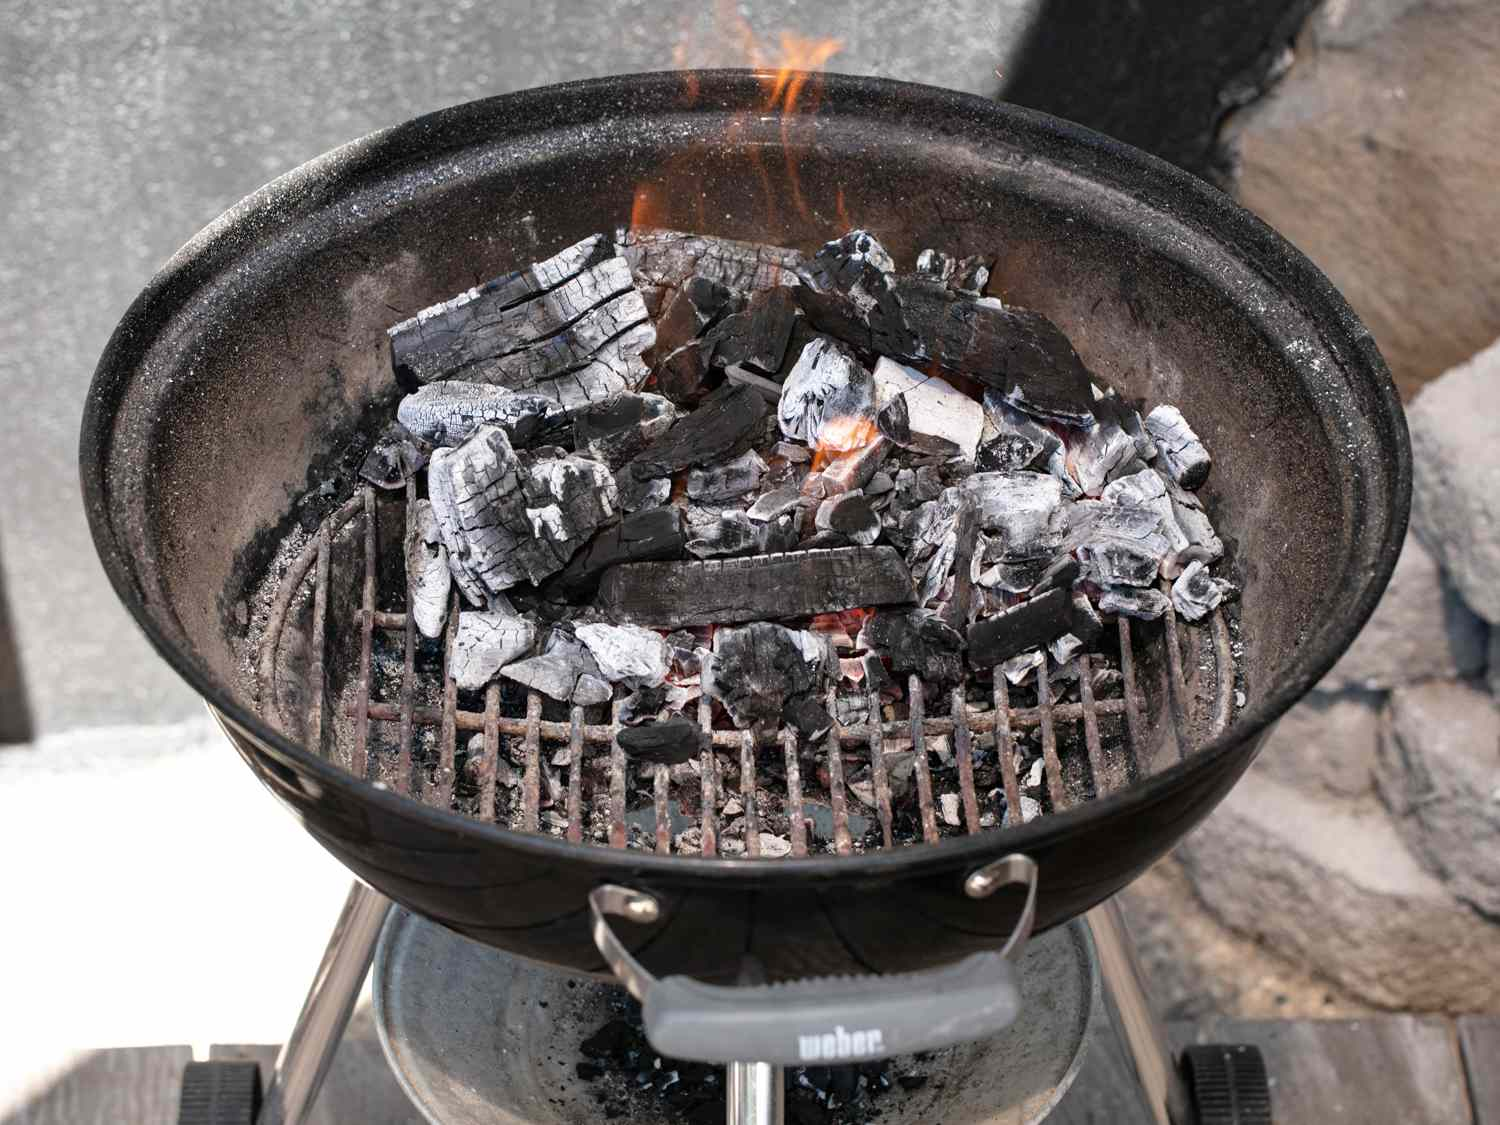 Hot hardwood charcoal on one side of a kettle grill.